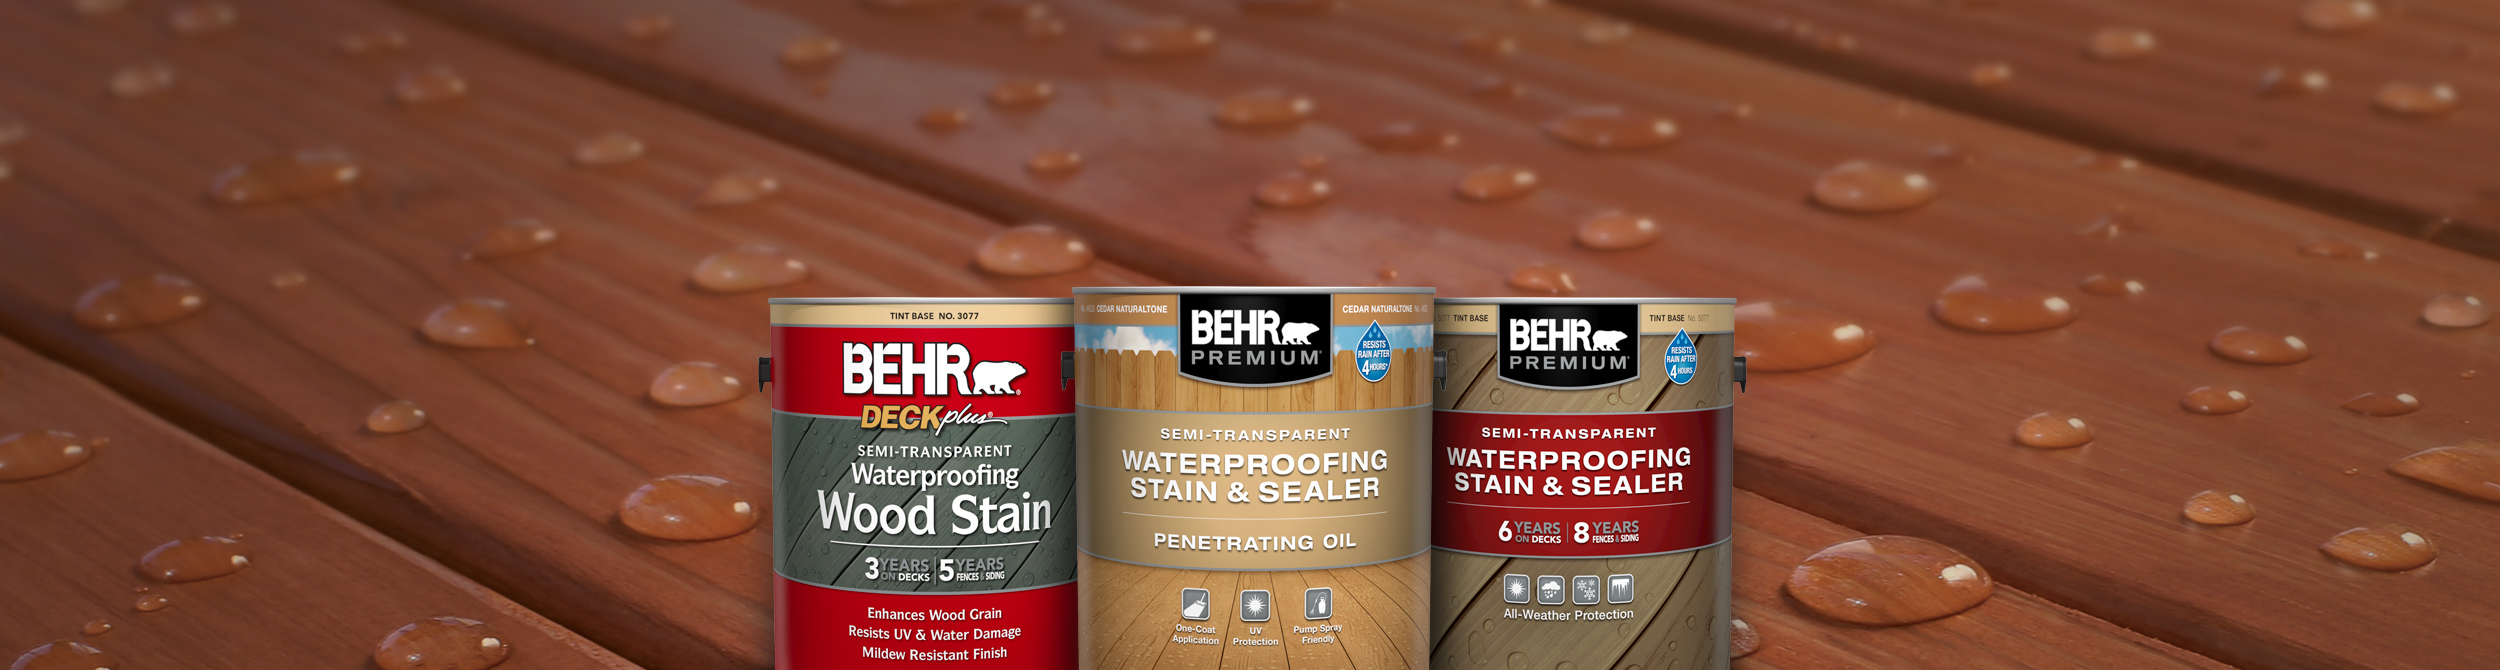 Behr Semi Transparent Stain Products against a wood deck.